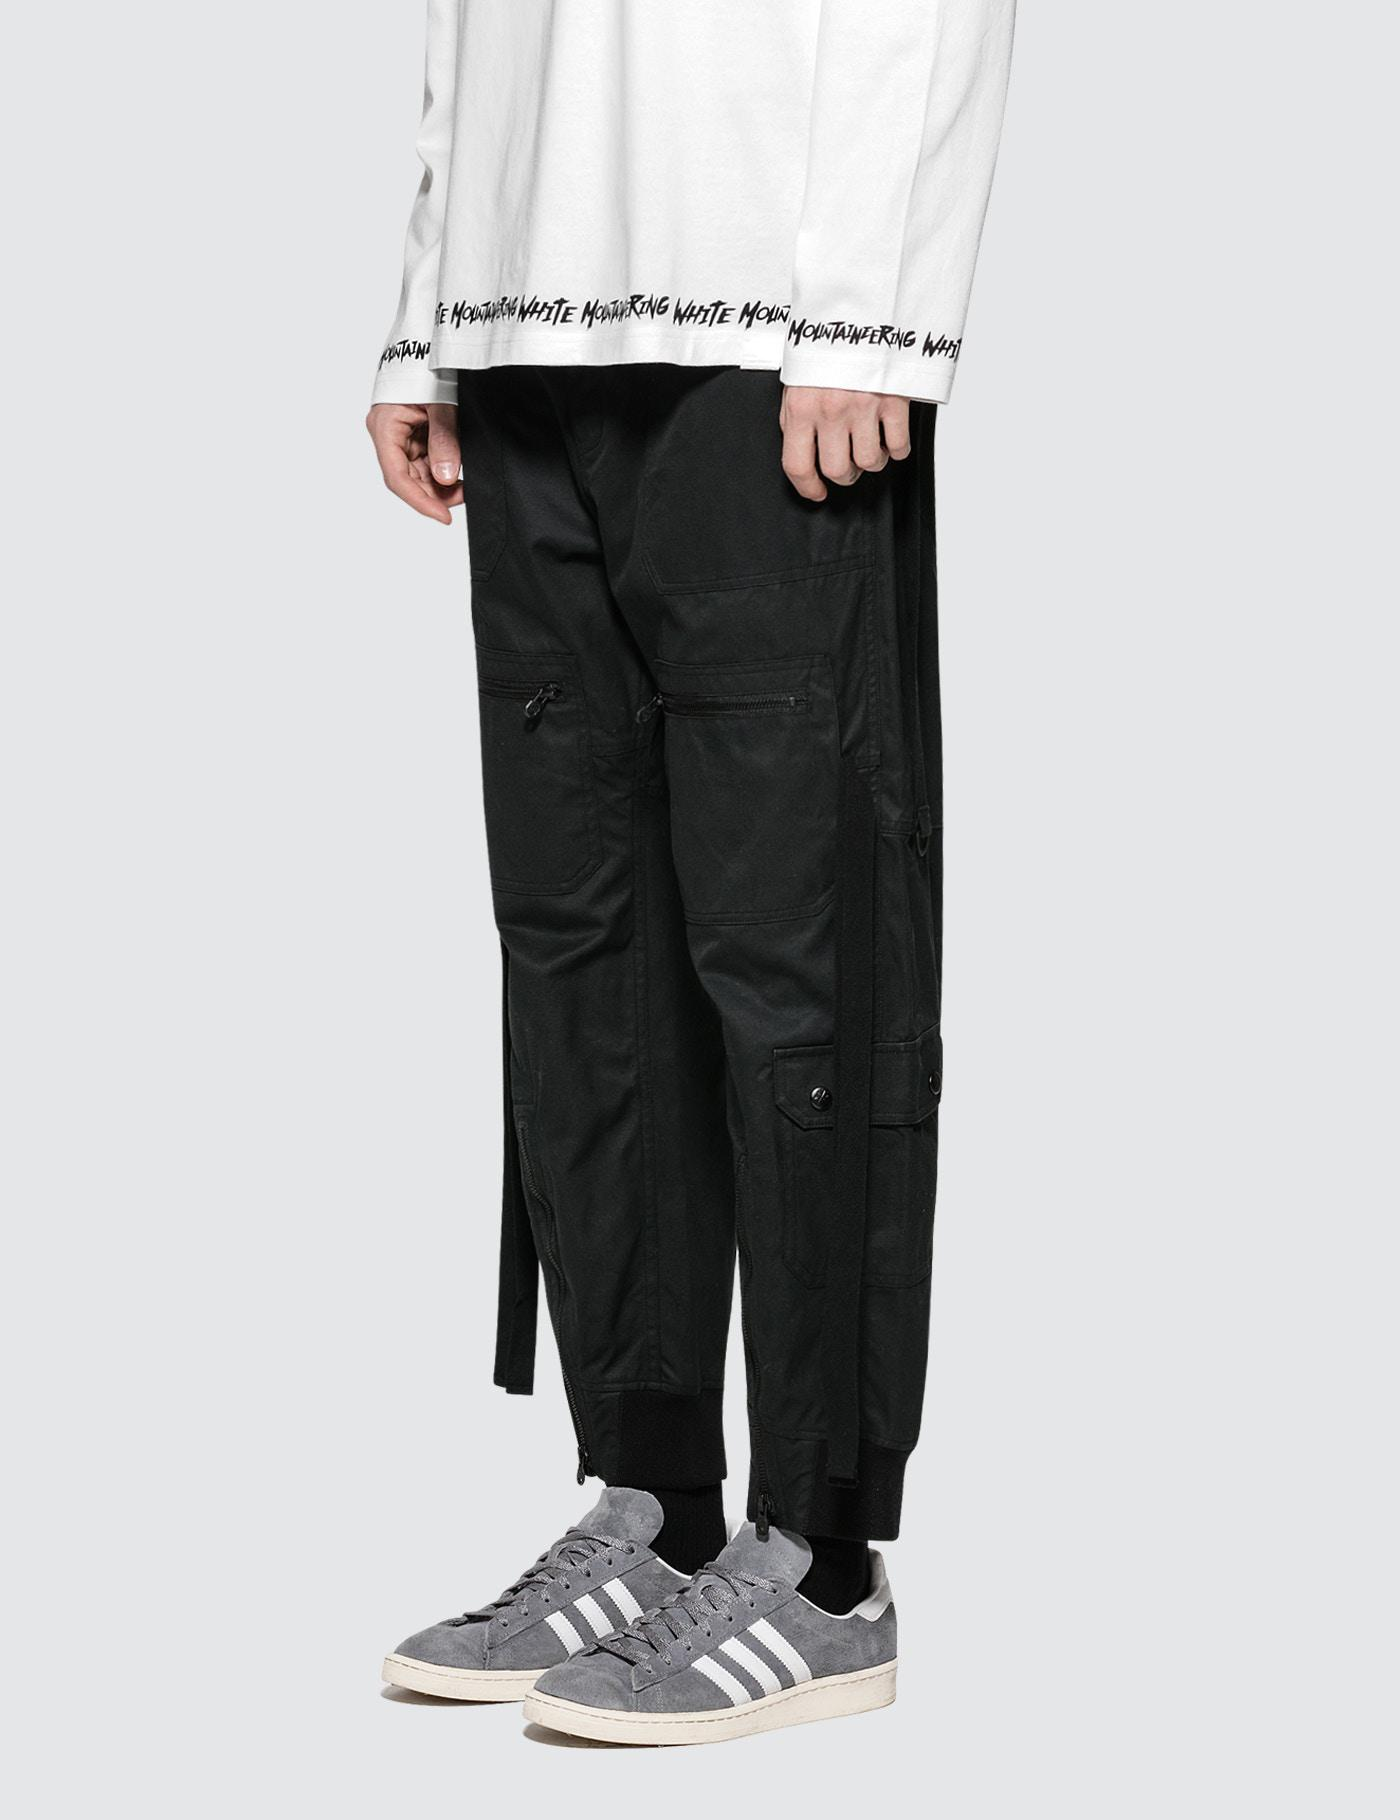 White Mountaineering Cotton Wide Flight Pants in Black for Men